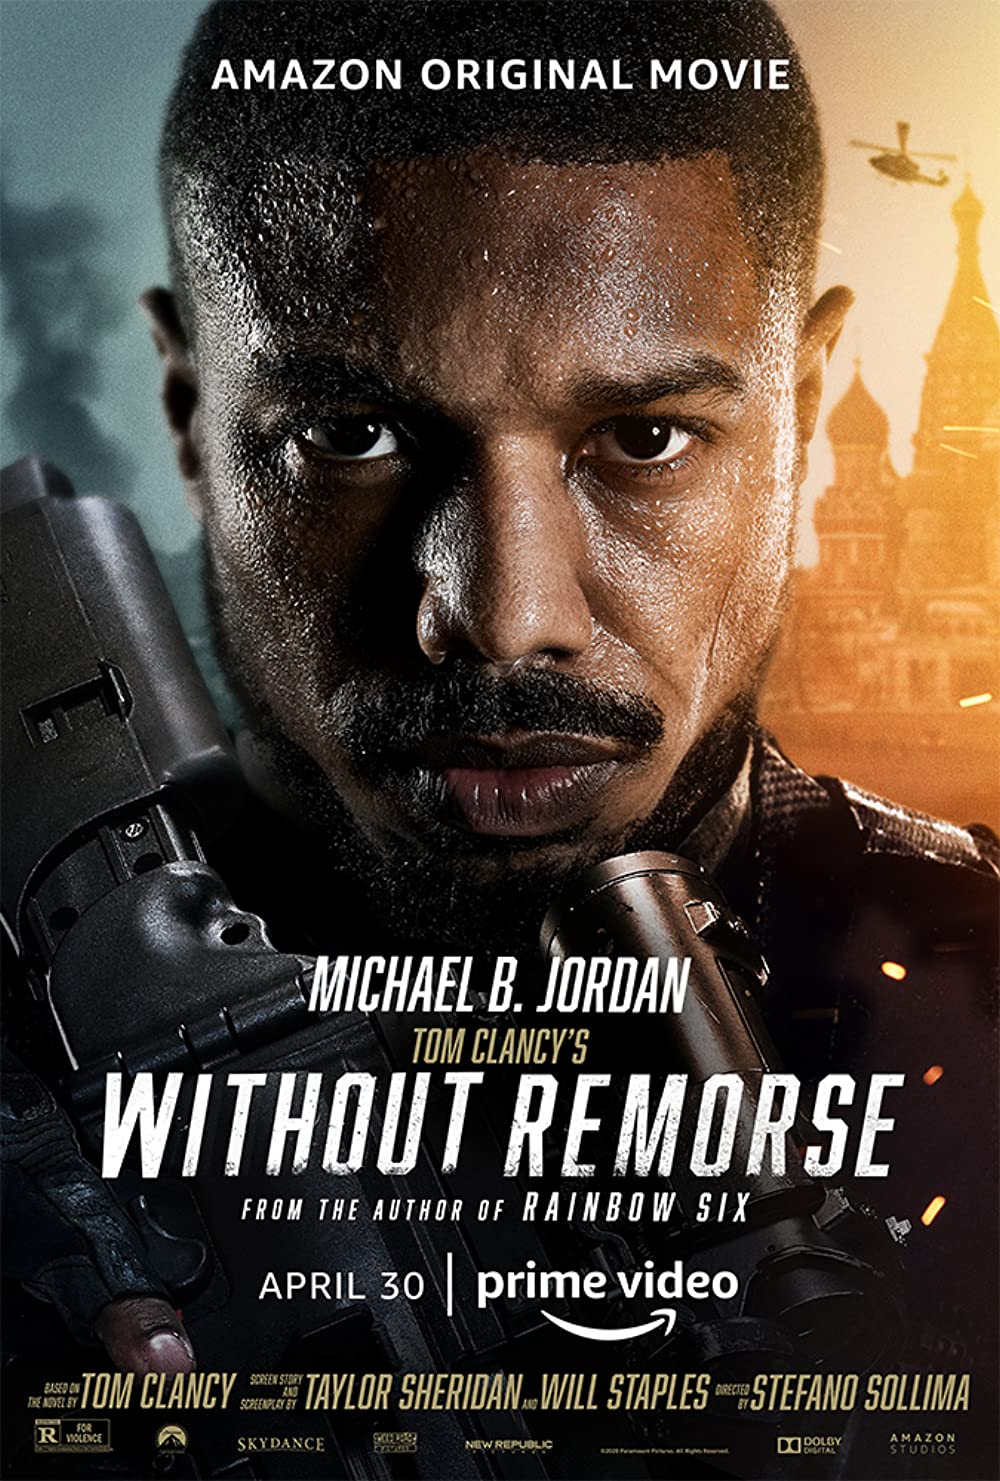 Download Tom Clancy's Without Remorse 2021 Hindi Dubbed Unofficial 480p HDRip 350MB